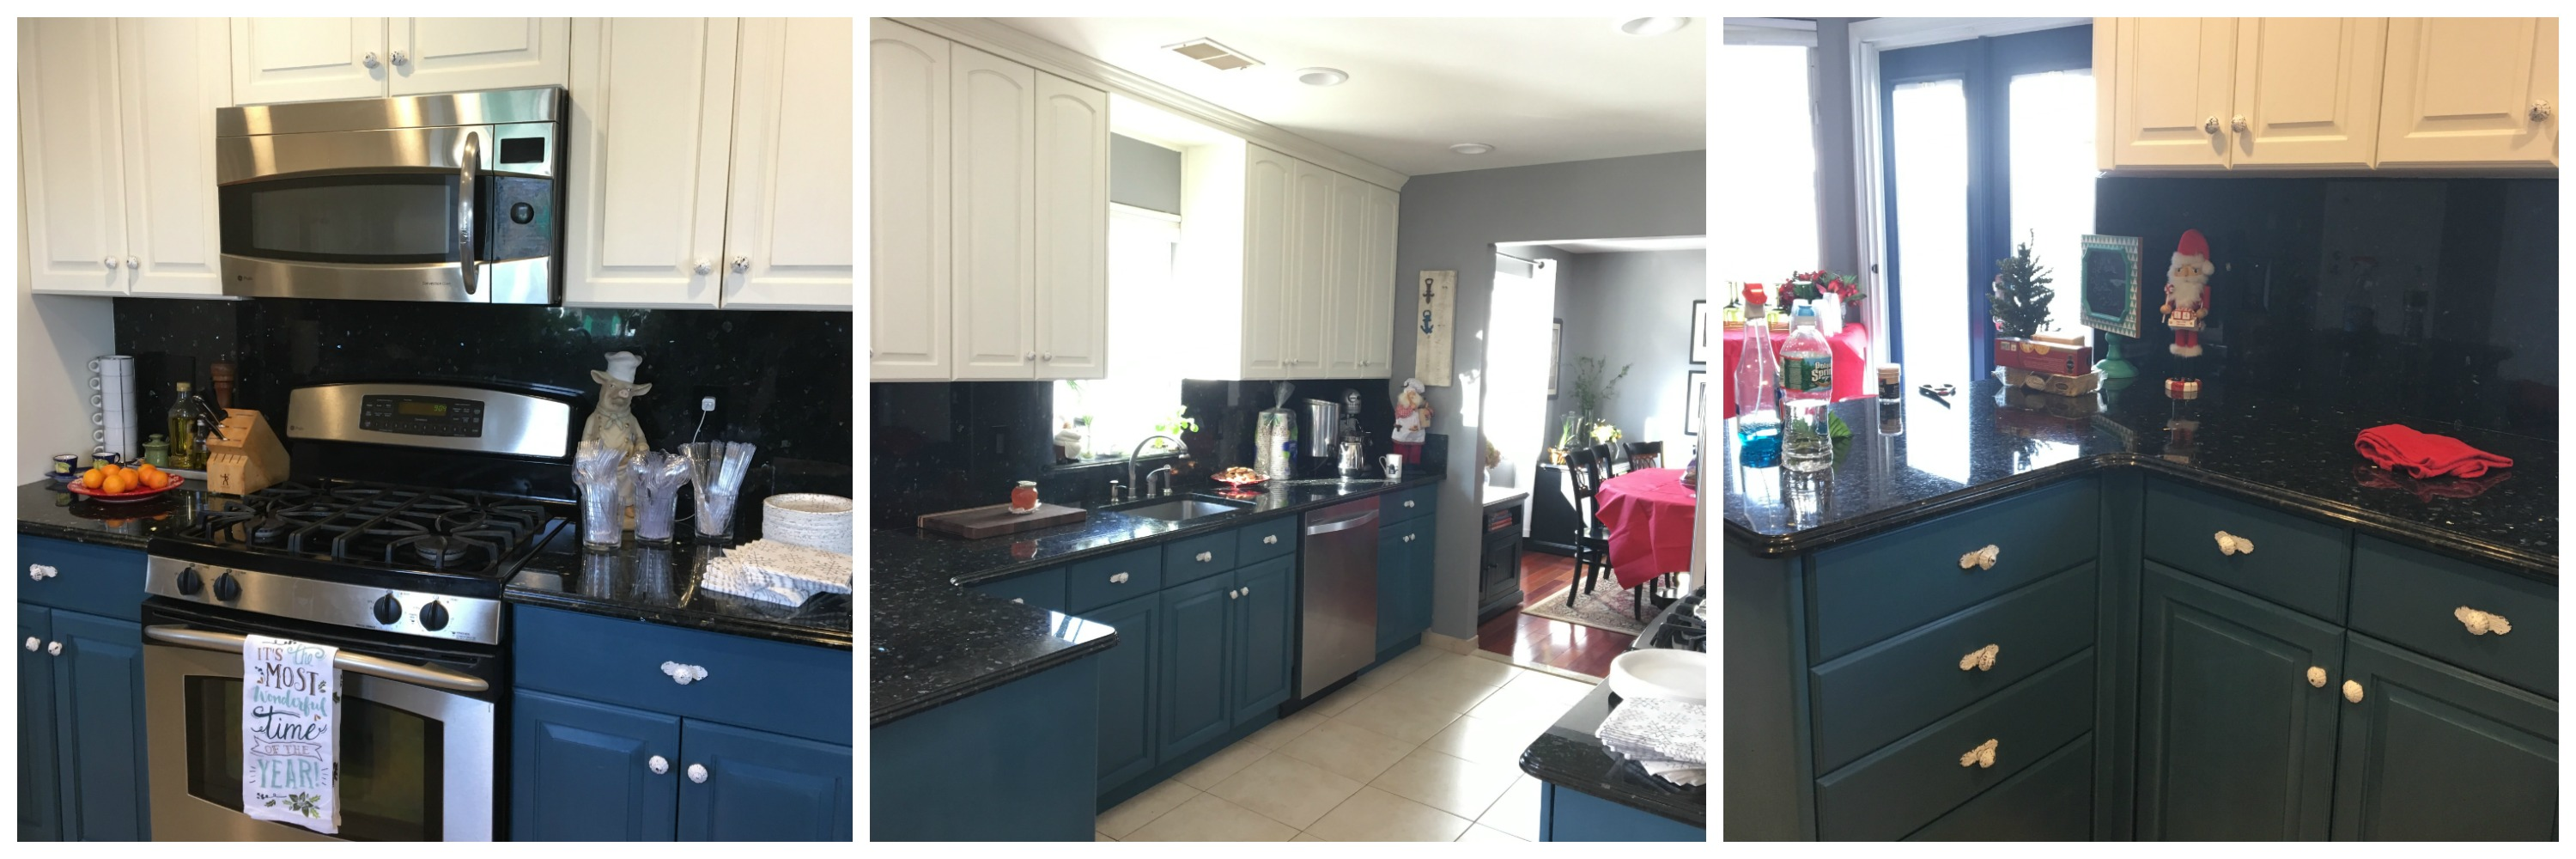 Our Kitchen Makeover... We Finally Took The Plunge! Lets Just Say That